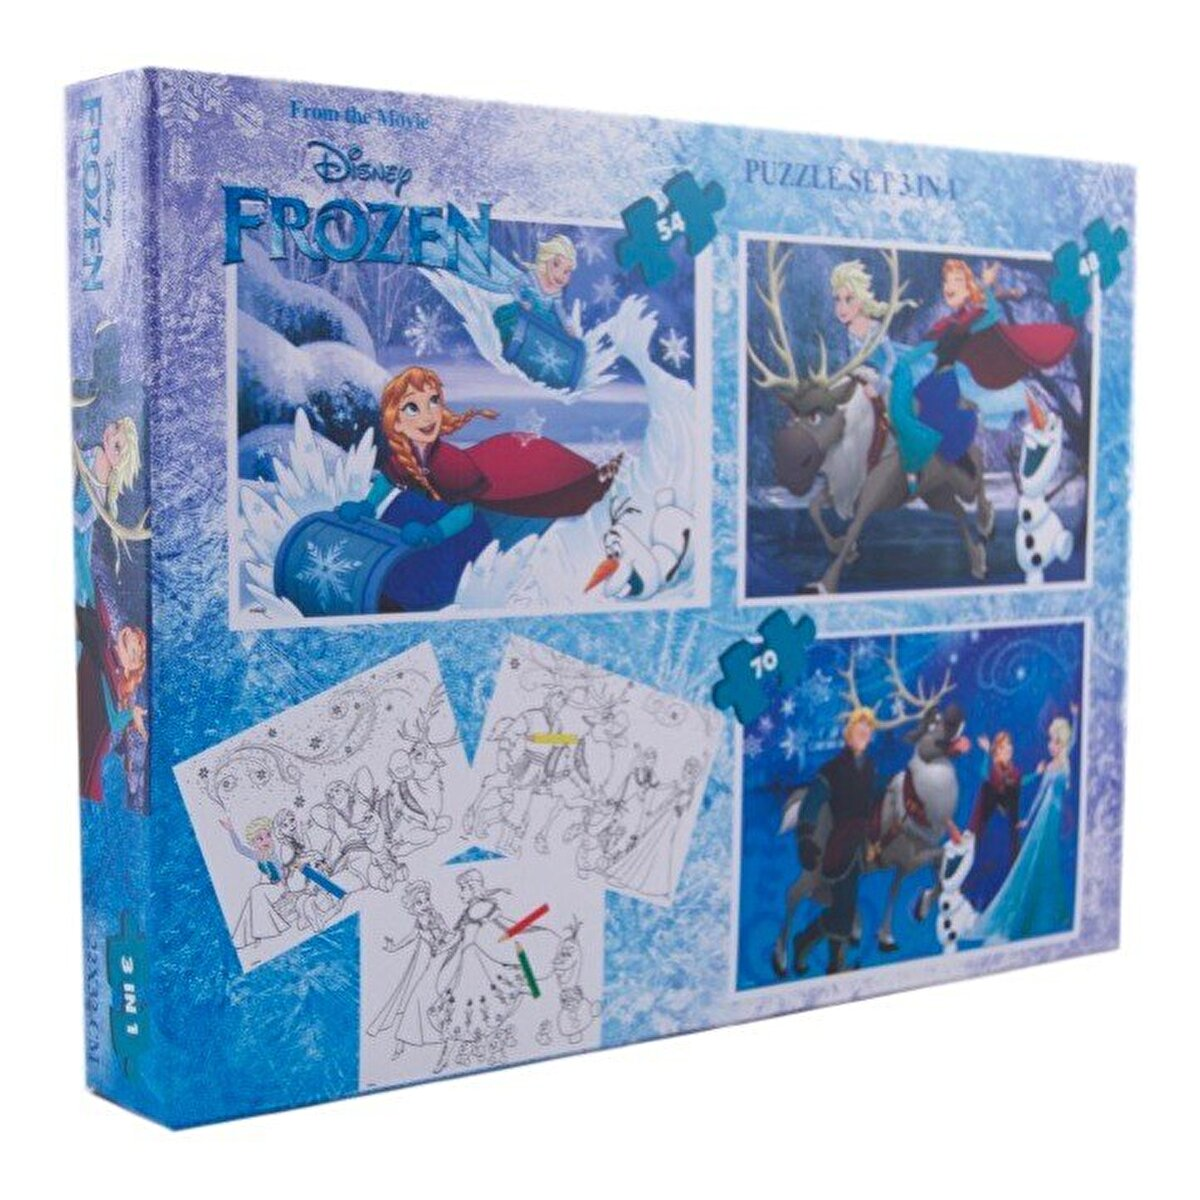 Puzzle 3 in 1 - Frozen, 172 piese